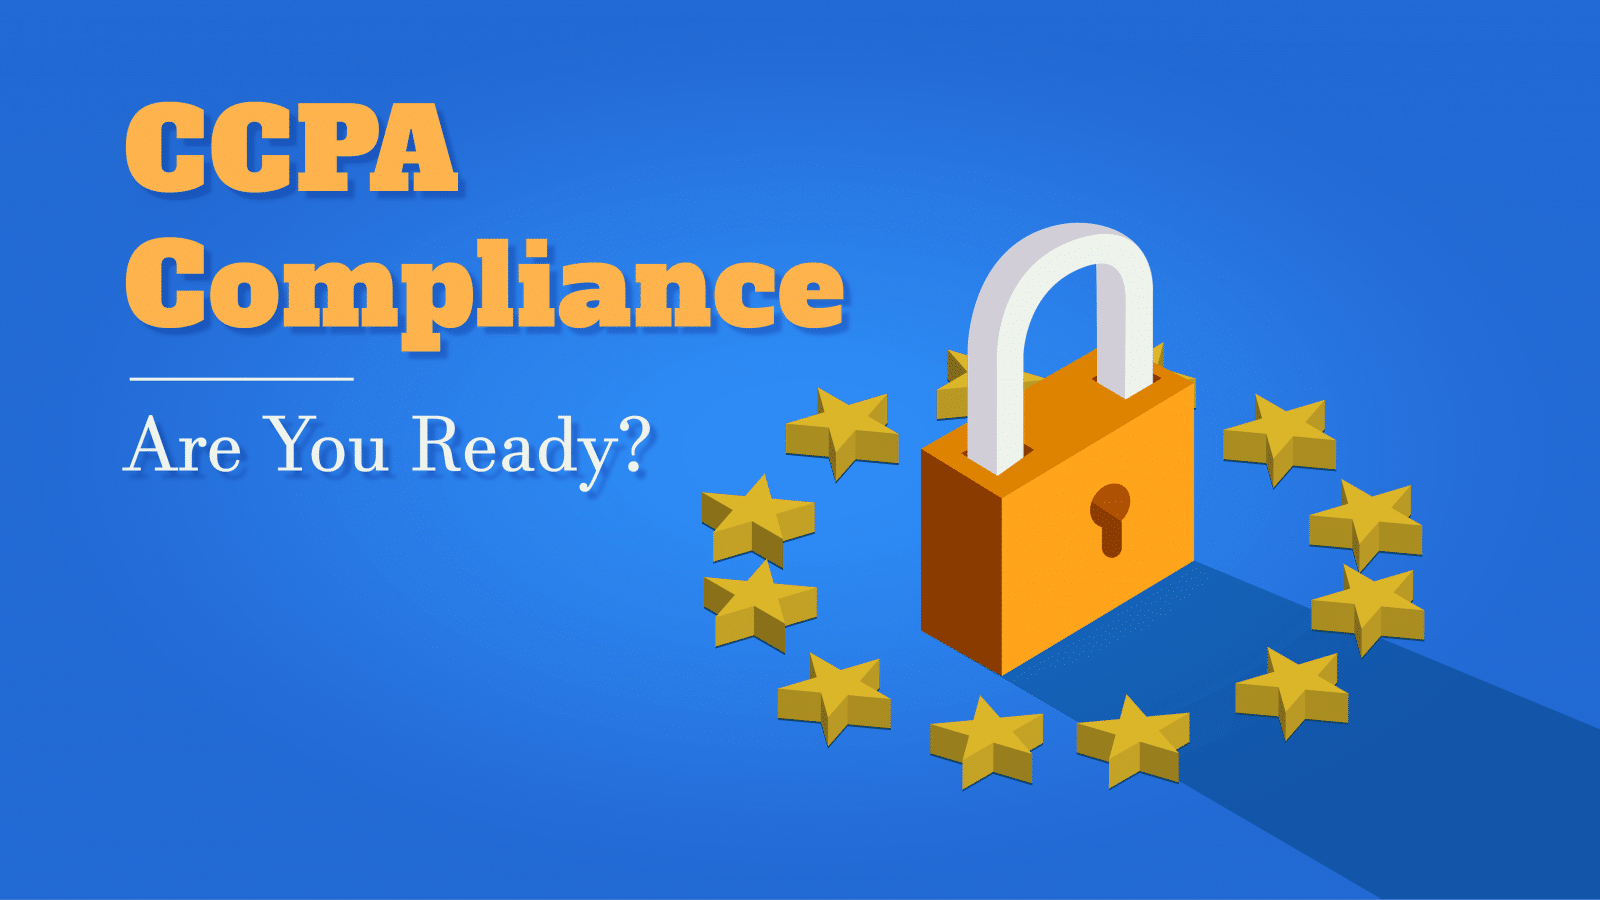 Are You CCPA Compliant